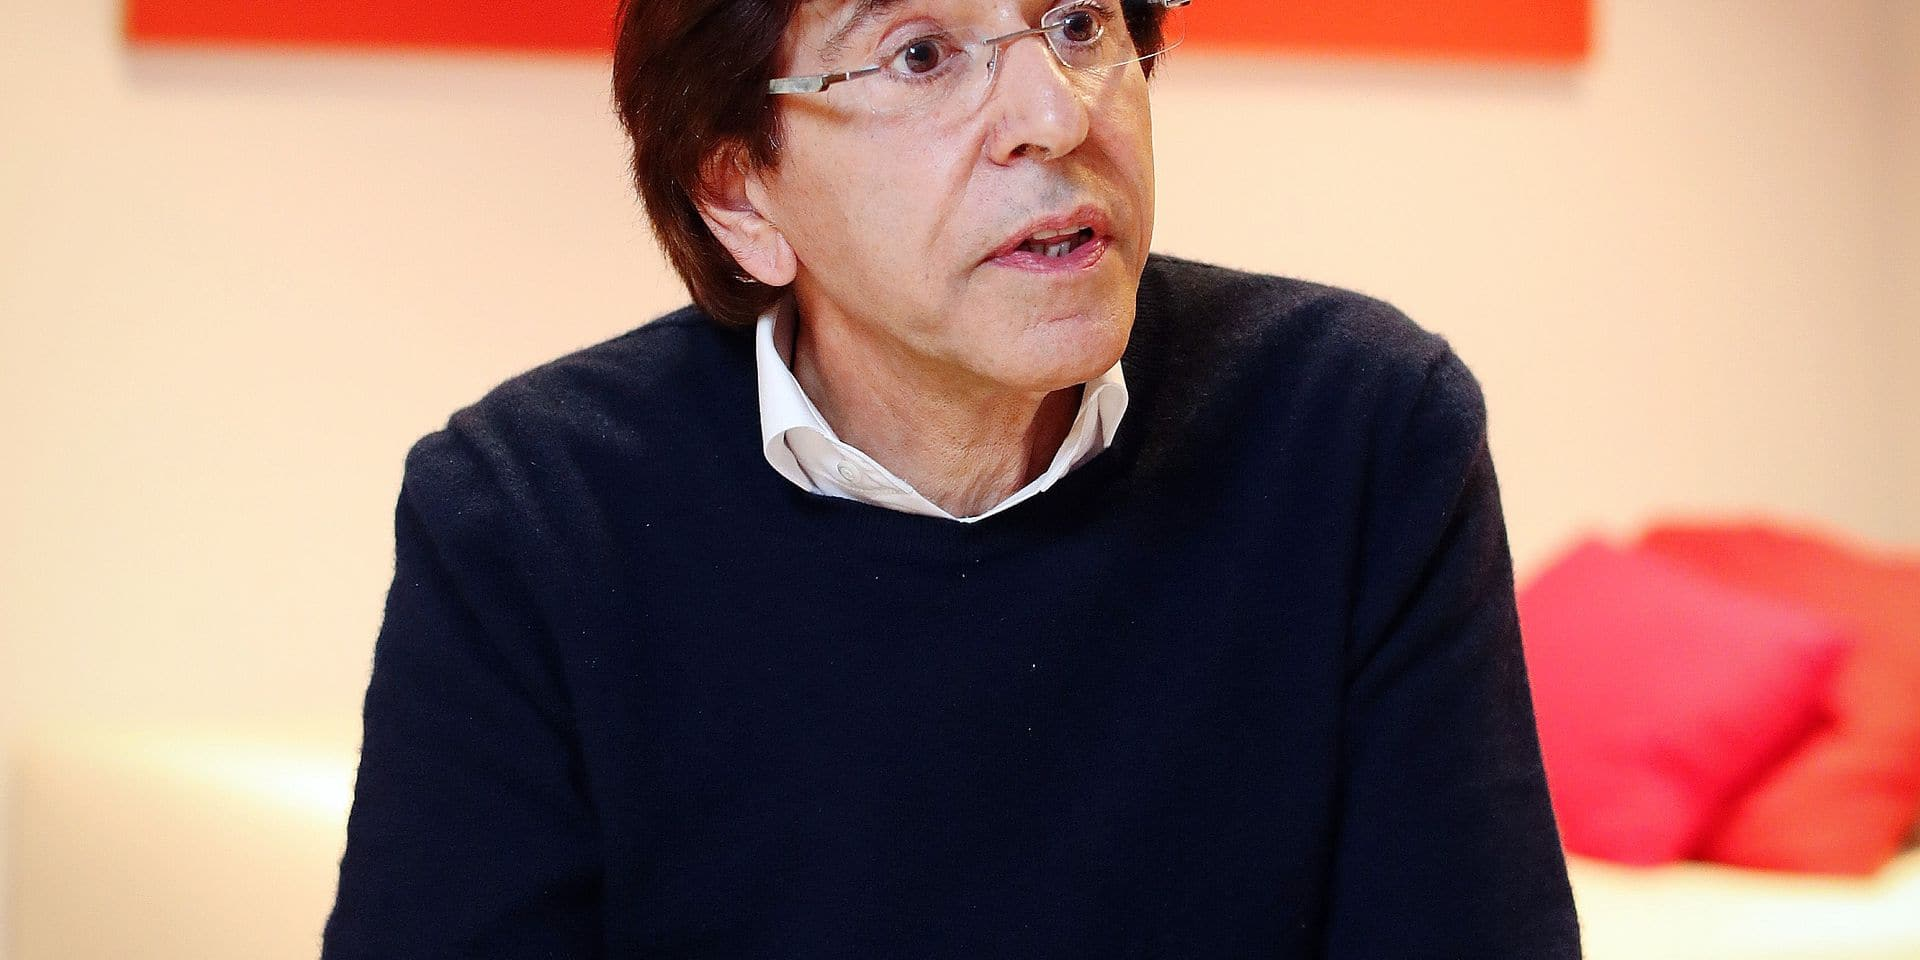 Photos Bernard Demoulin: Elio Di Rupo intervieuw au siege du PS